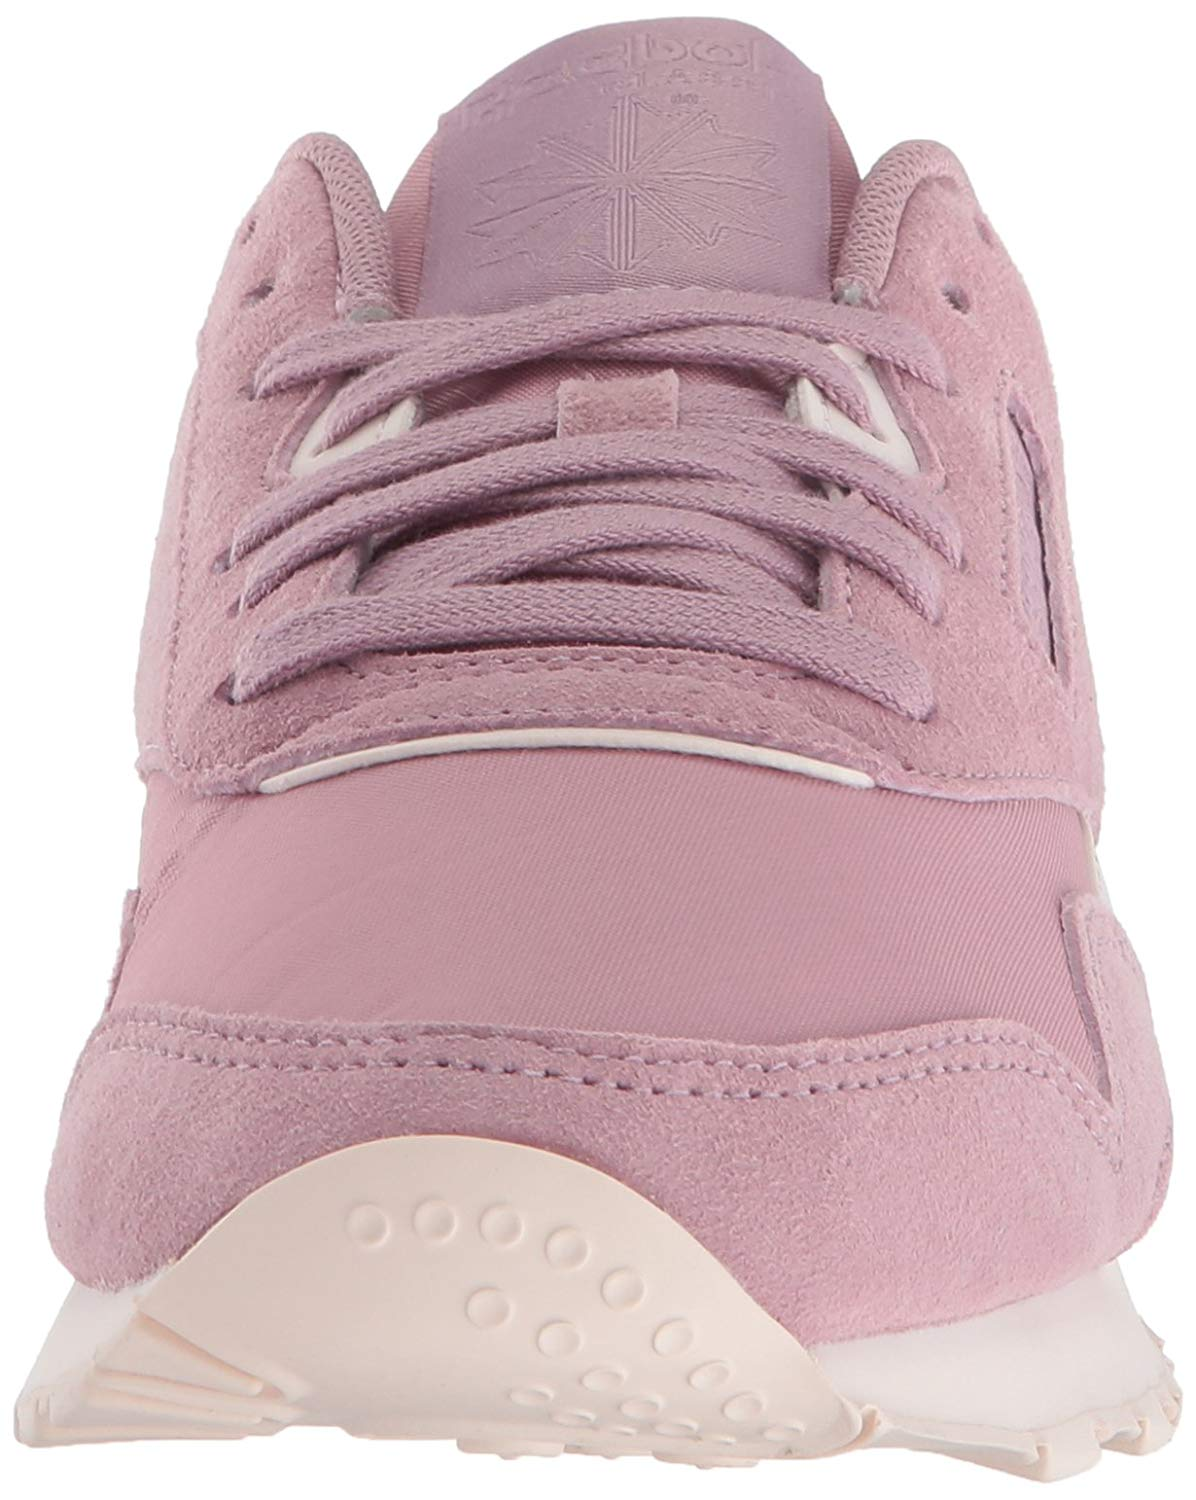 Reebok Womens Classic Nylon Leather Low Top Lace Up Fashion Sneakers ... 97115e399